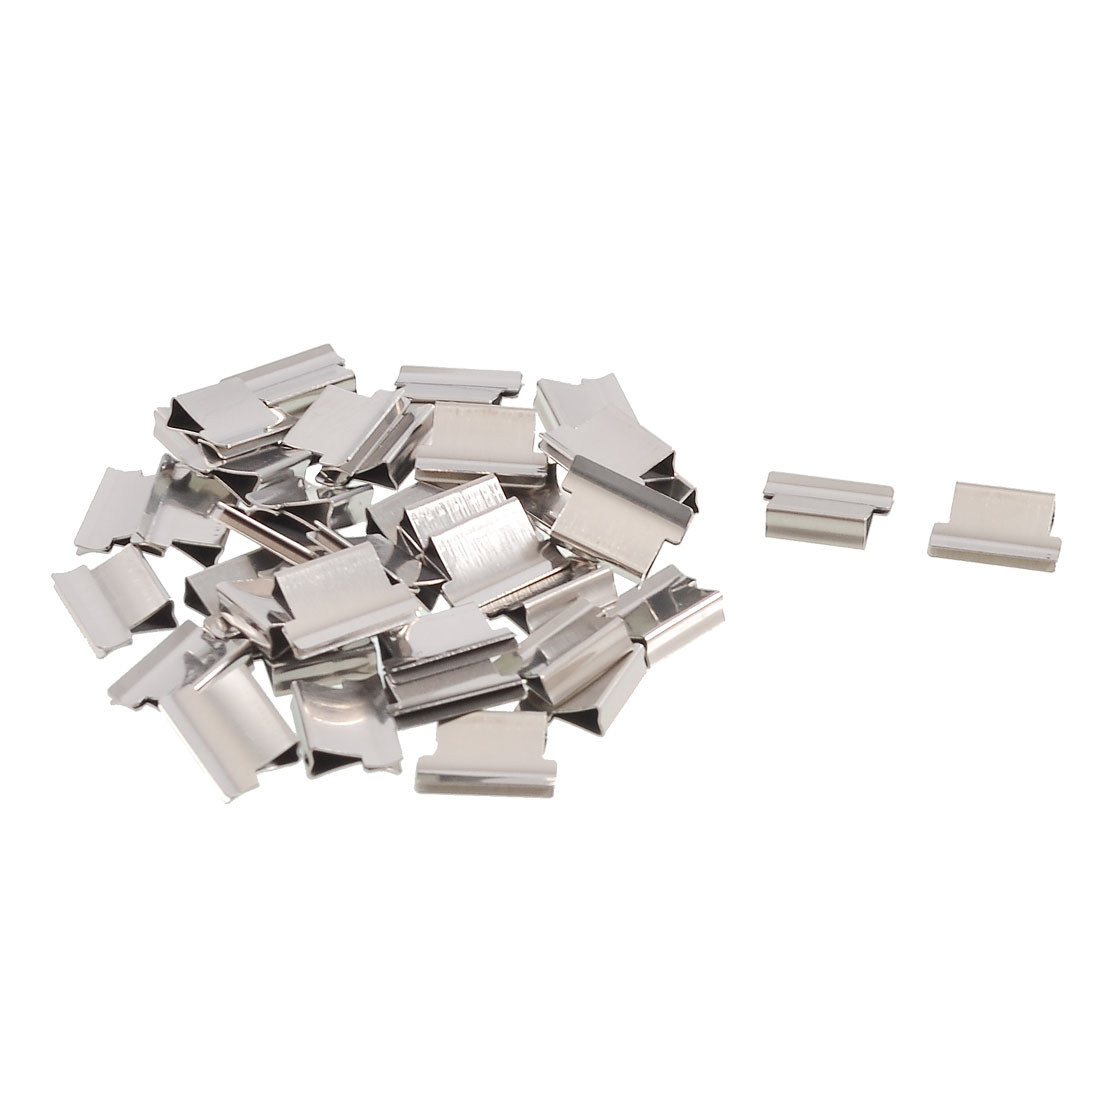 40 Pcs 13x9x4mm Paper Sheet Fastener Clip Dispenser Clips